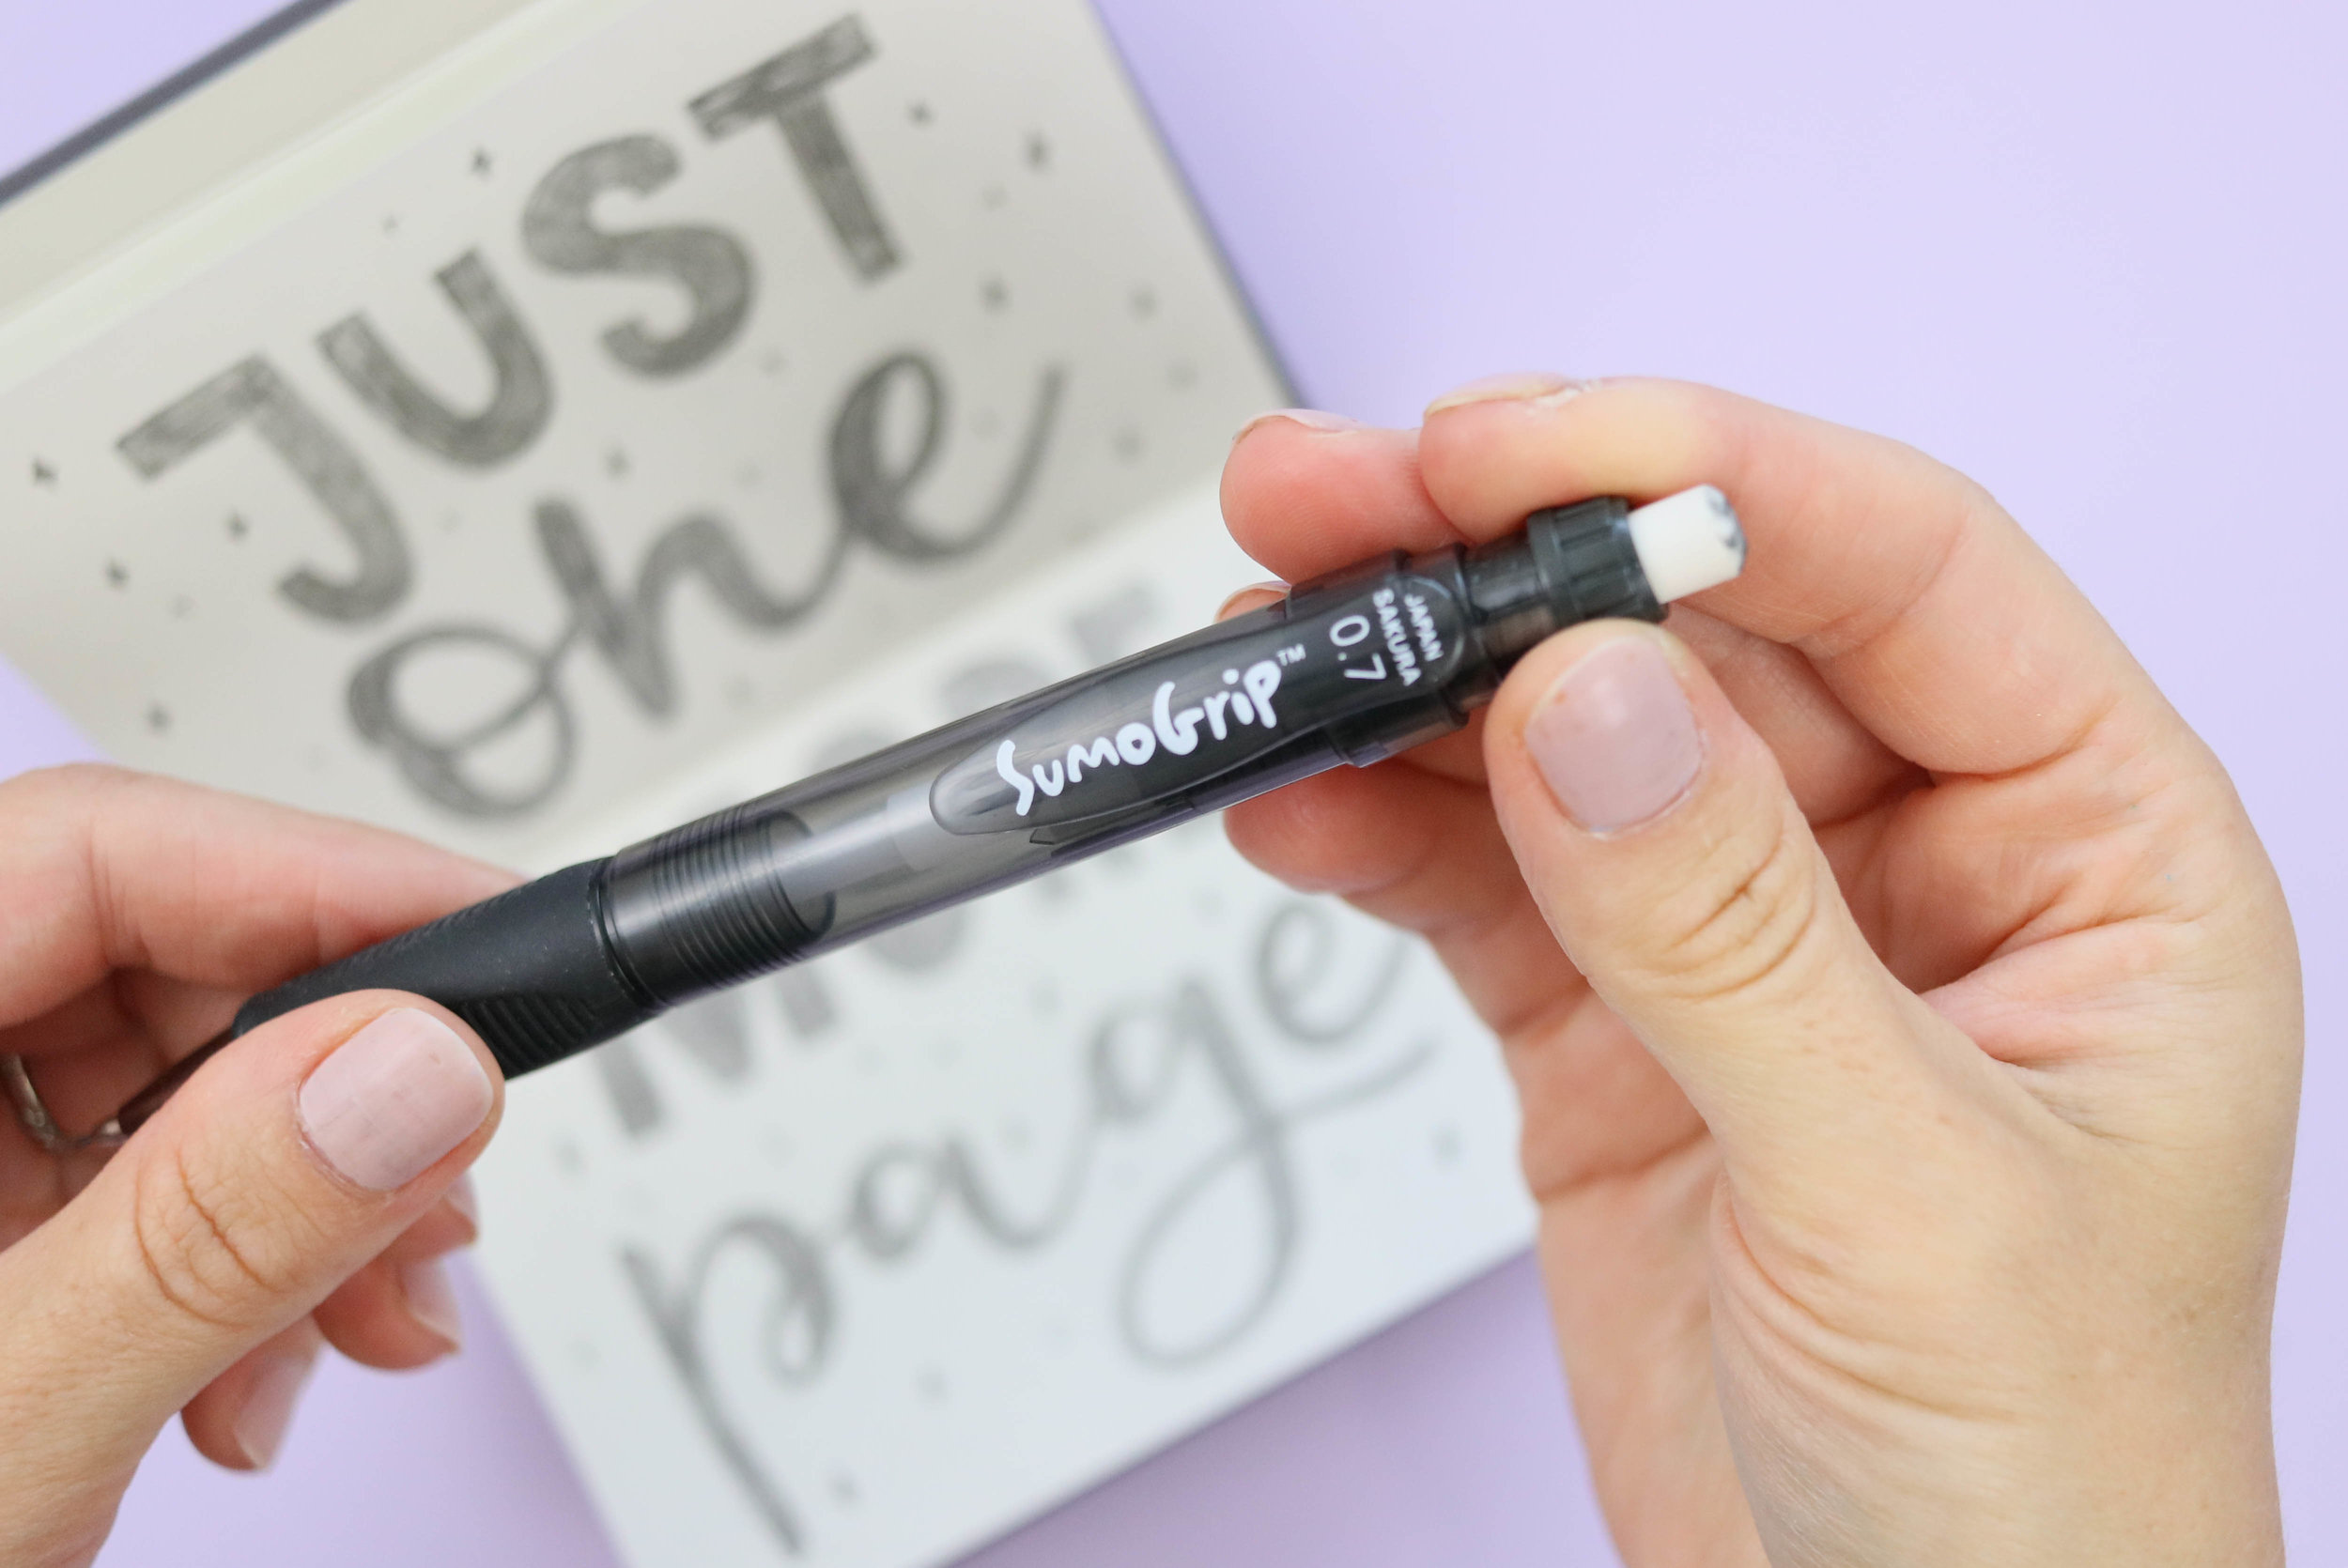 The best mechanical pencil for artists and lettering creative TwoEasels SumoGrip pencil